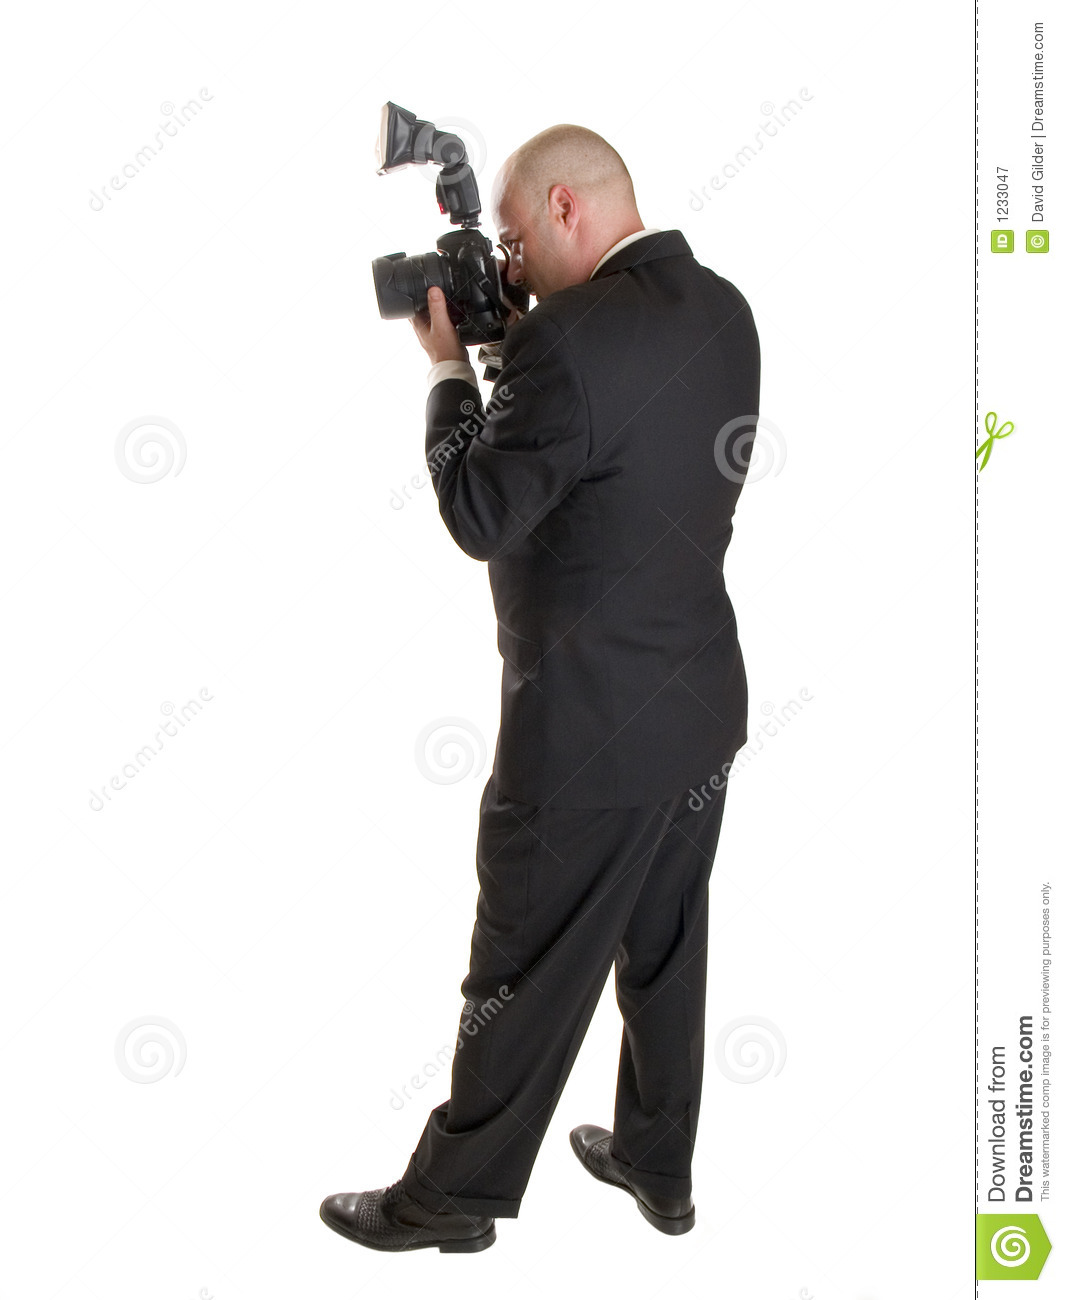 Wedding photographer stock image image of male person for How to be a wedding photographer